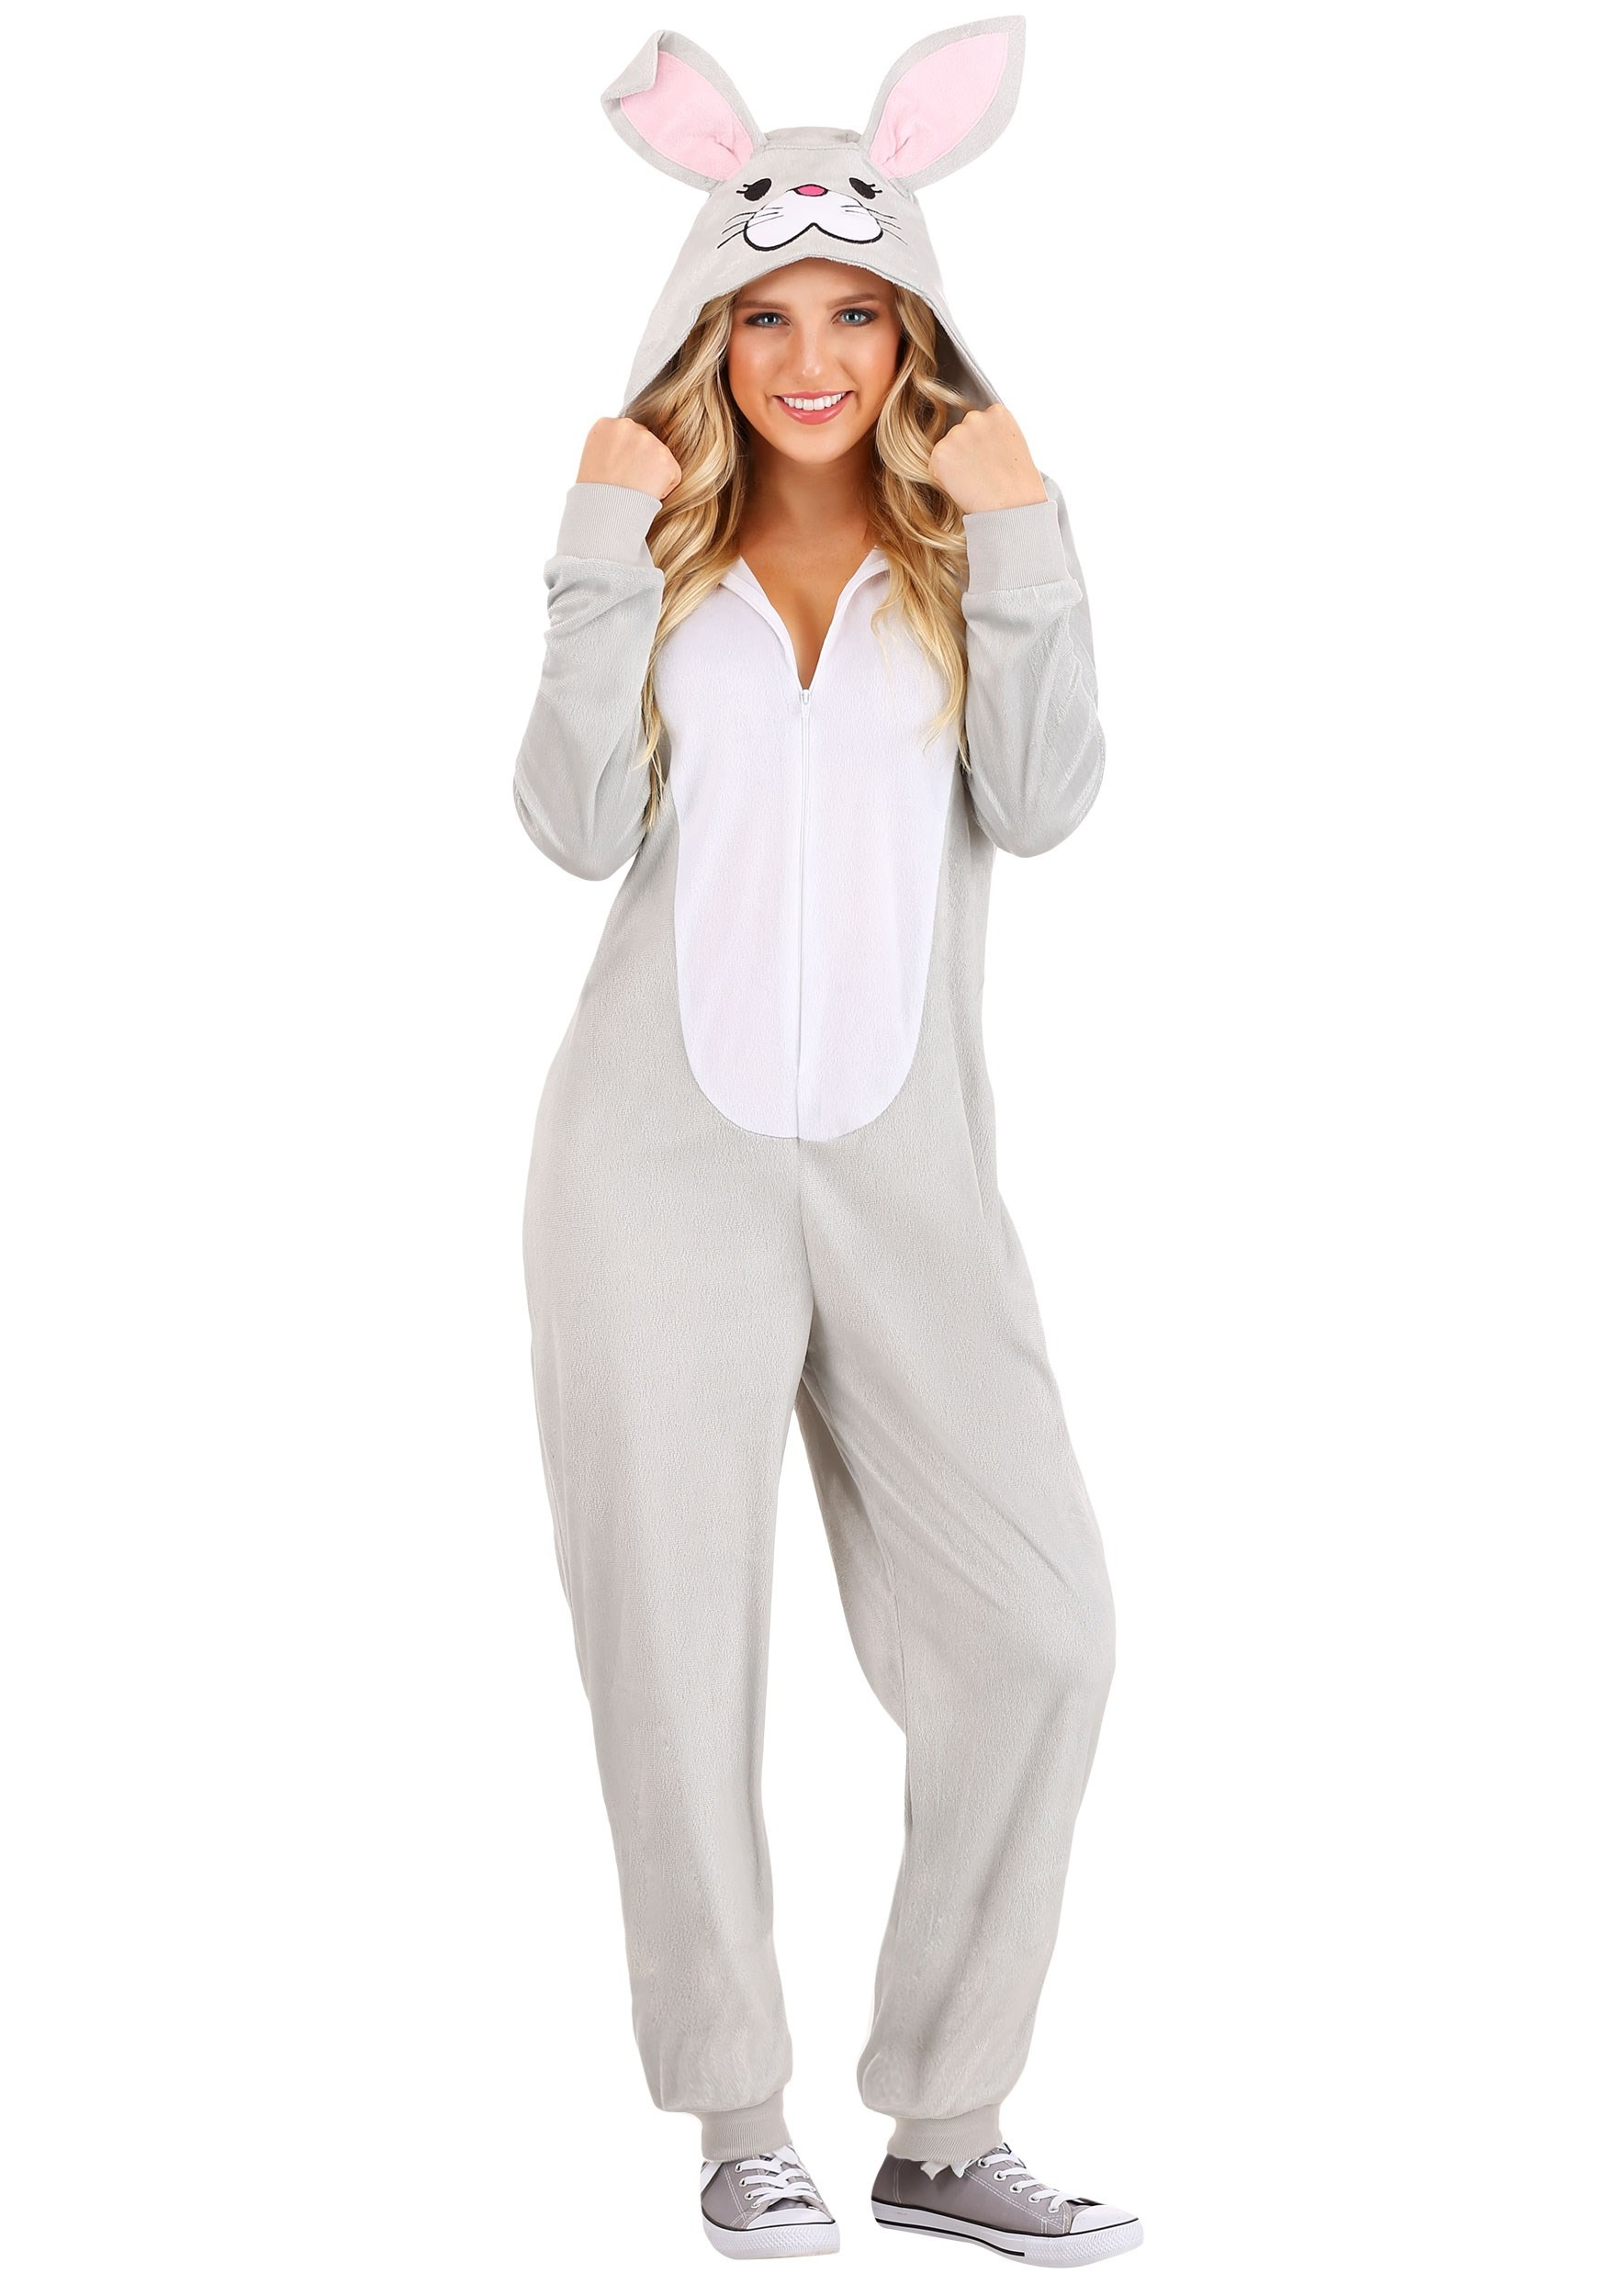 Funny Bunny Onesie for Adults